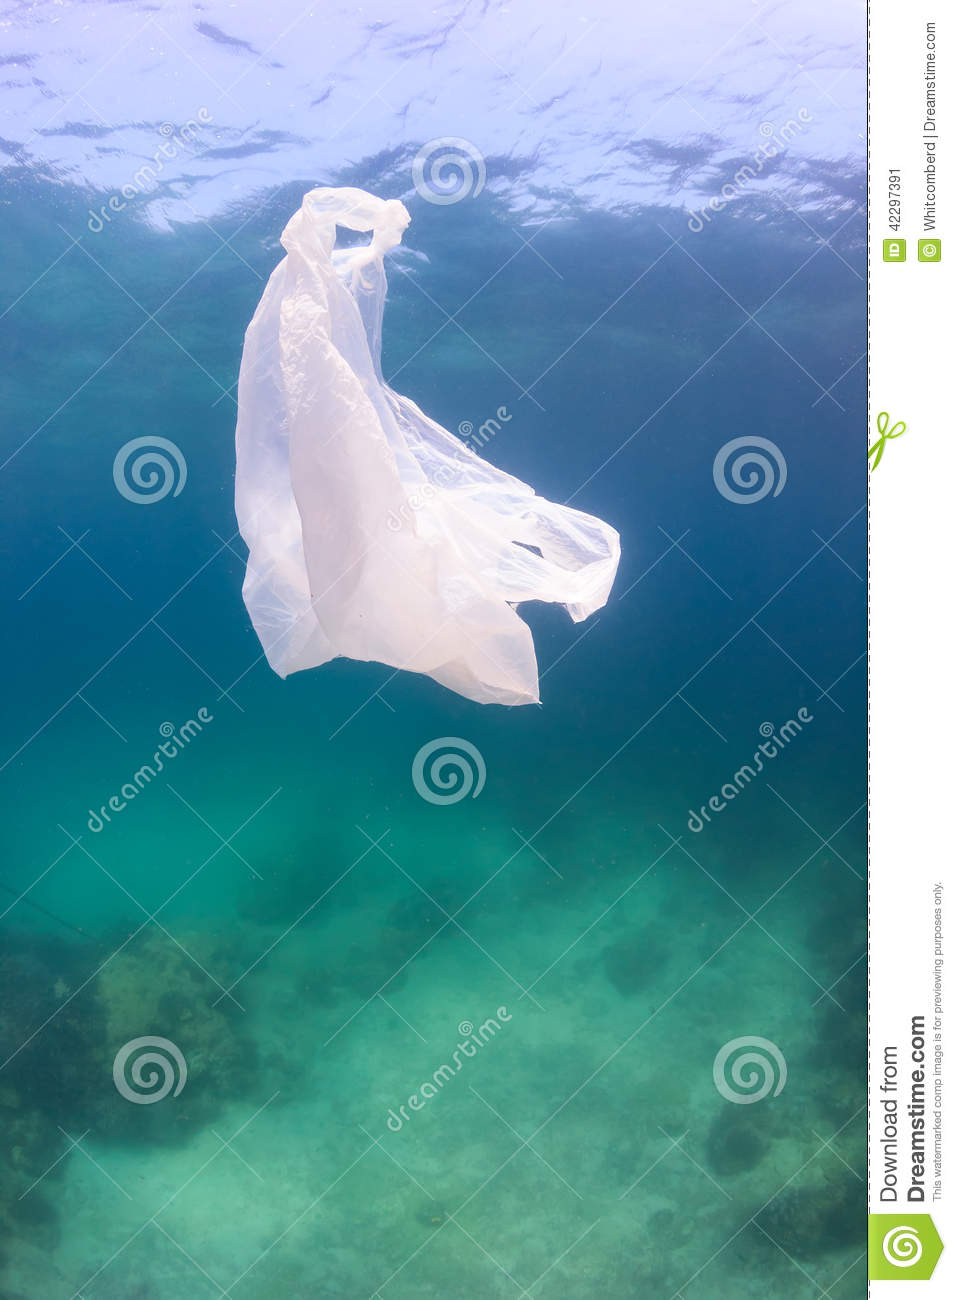 bag floating above green water and a dead seabed. Manmade pollution ...